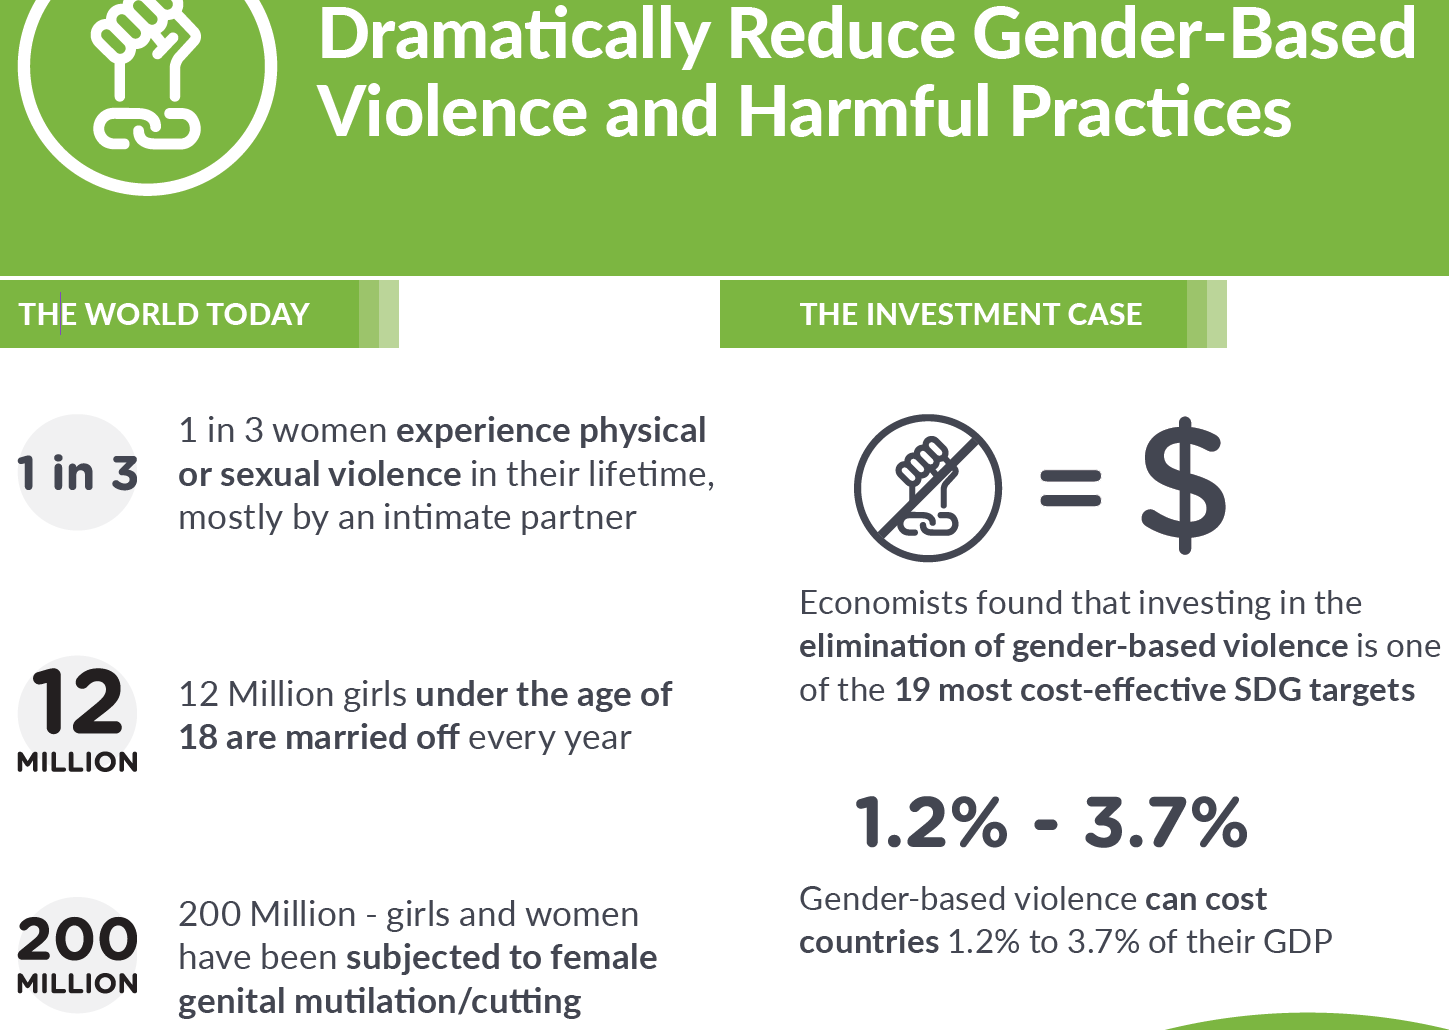 Women Deliver Dramatically Reduce Gender-Based Violence and Harmful Practices